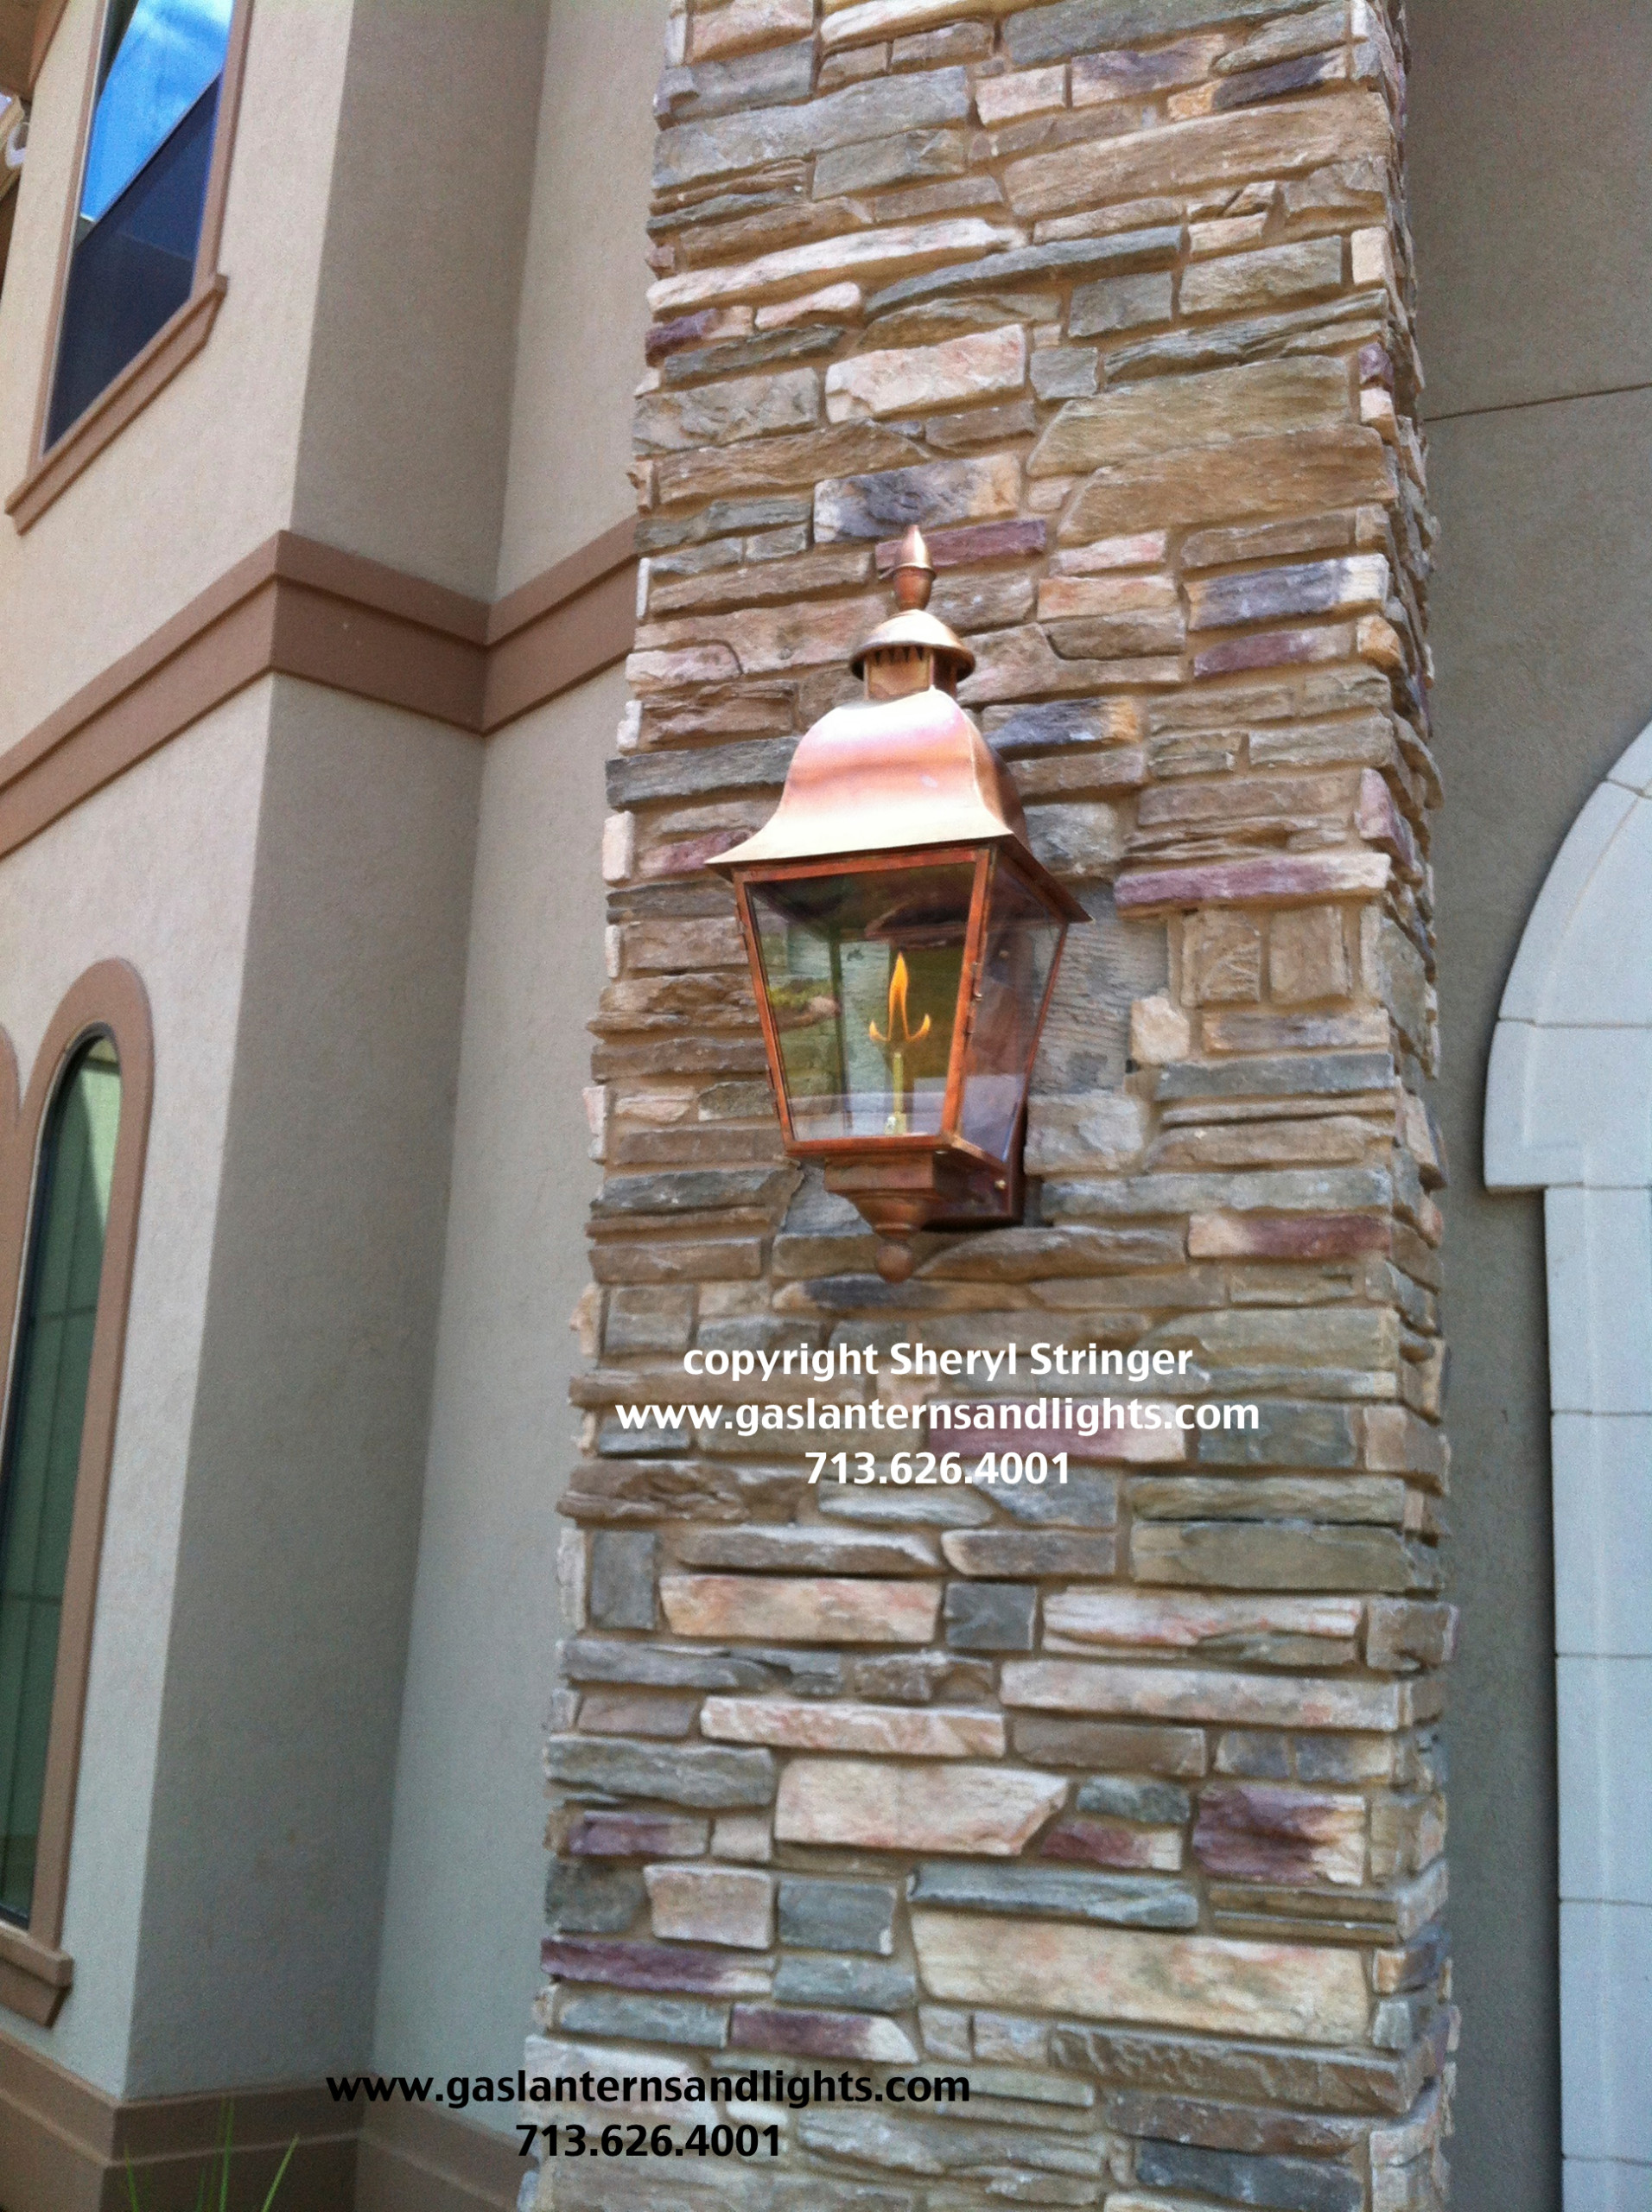 Sheryl's Tuscan Gas Lanterns with Natural Copper Finish